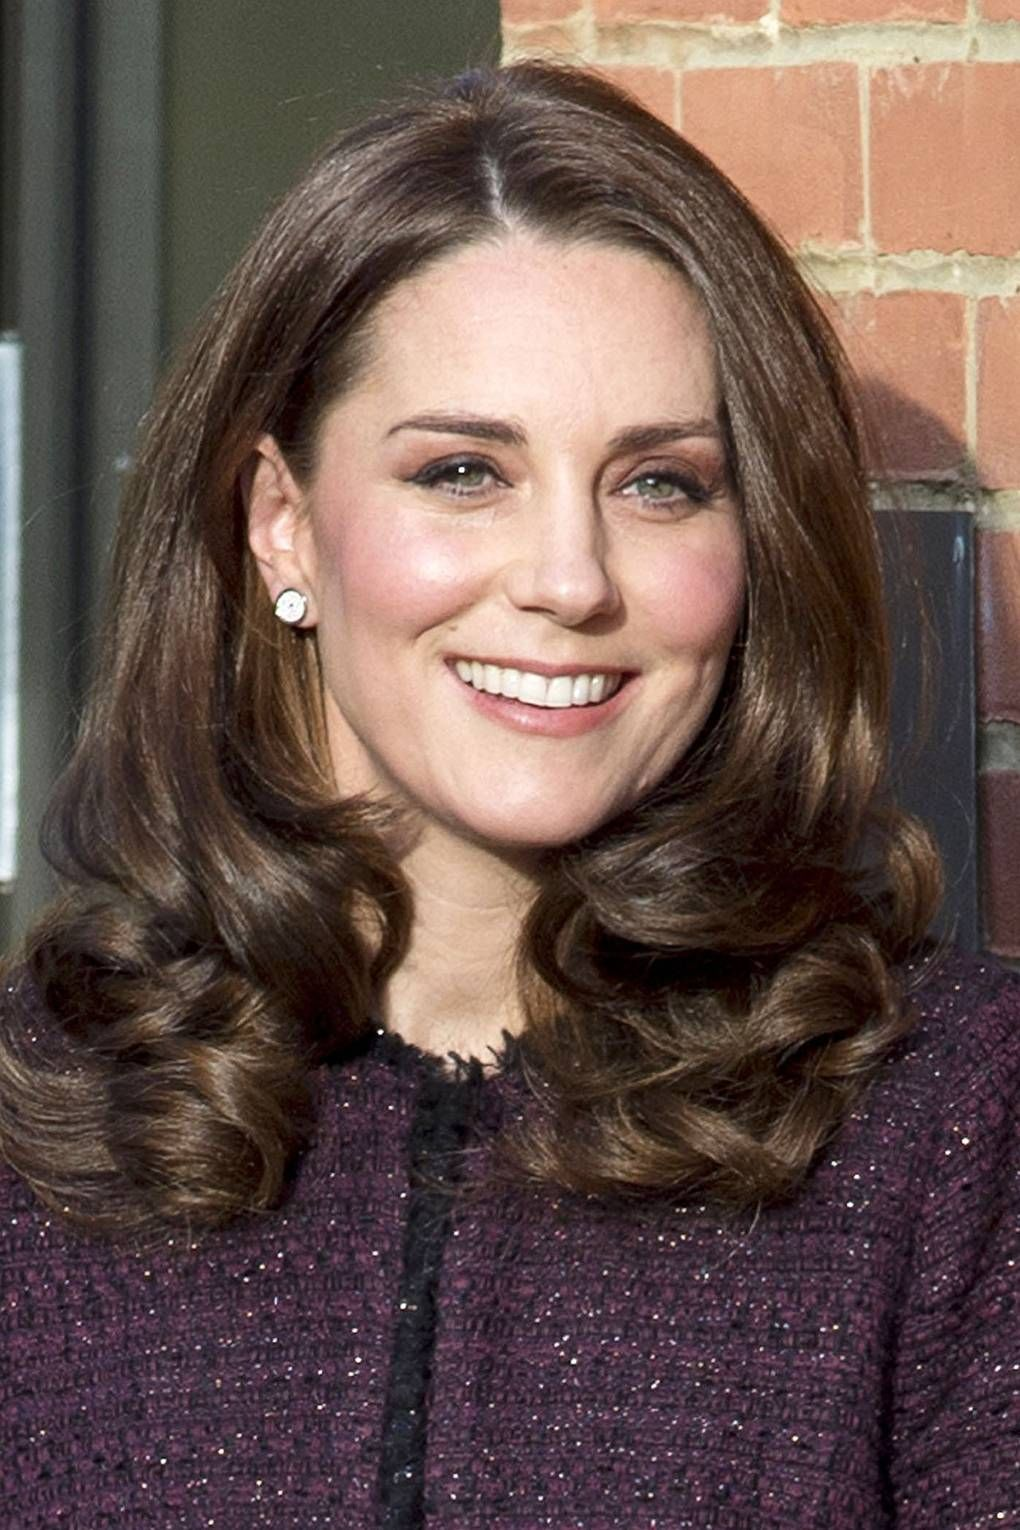 Kate Middleton's hair a consistent obsession at GLAMOUR